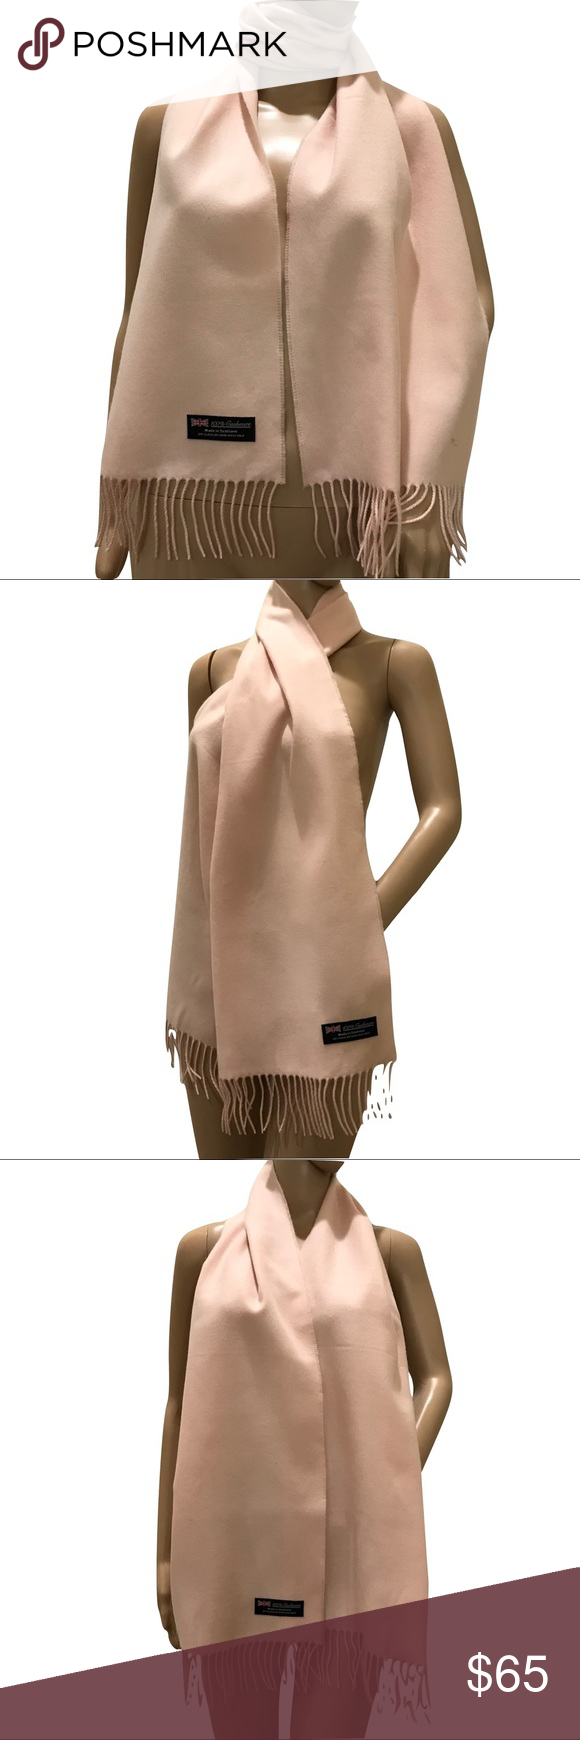 100% Cashmere Blush Pink Scarf Blush Pink colored cashmere